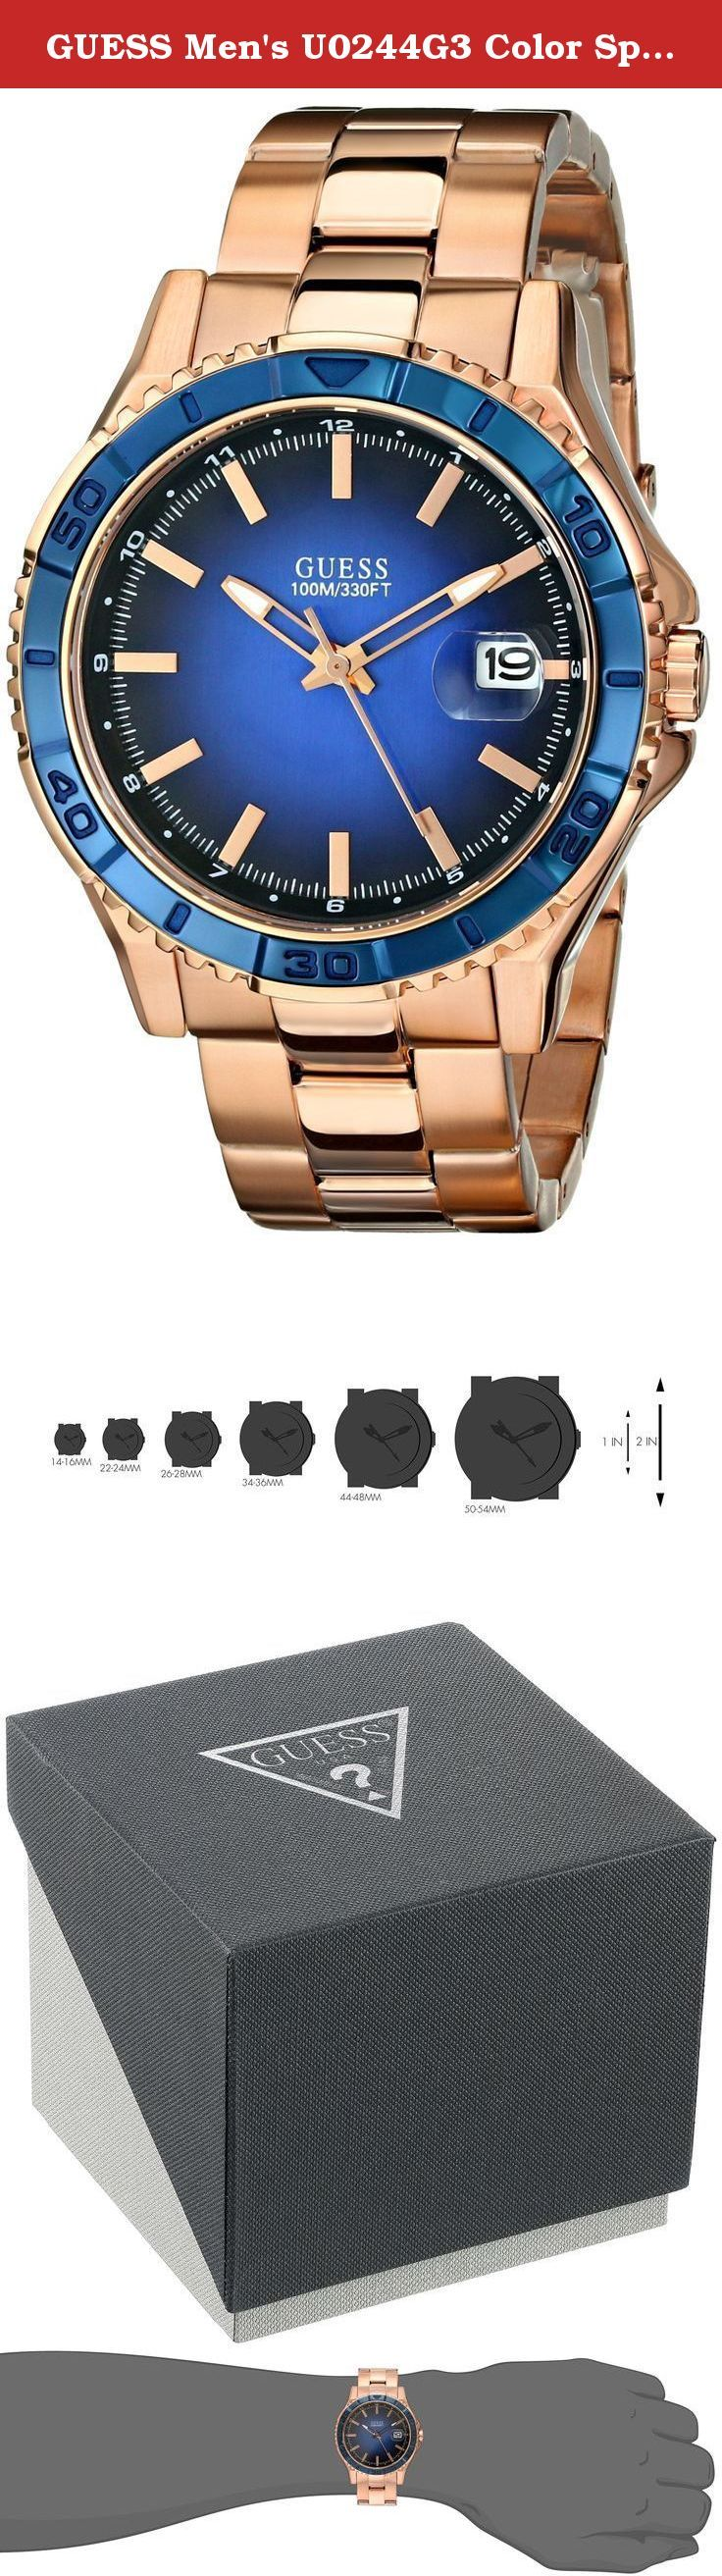 GUESS Men's U0244G3 Color Sport Blue Dial Rose Gold-Tone Watch. Define Your Time with this GUESS Stunning Rose Gold-Tone Watch with Blue Dial & Date that Stands Apart from the Rest & is Unisex, a Perfect Hybrid for Him or Her.